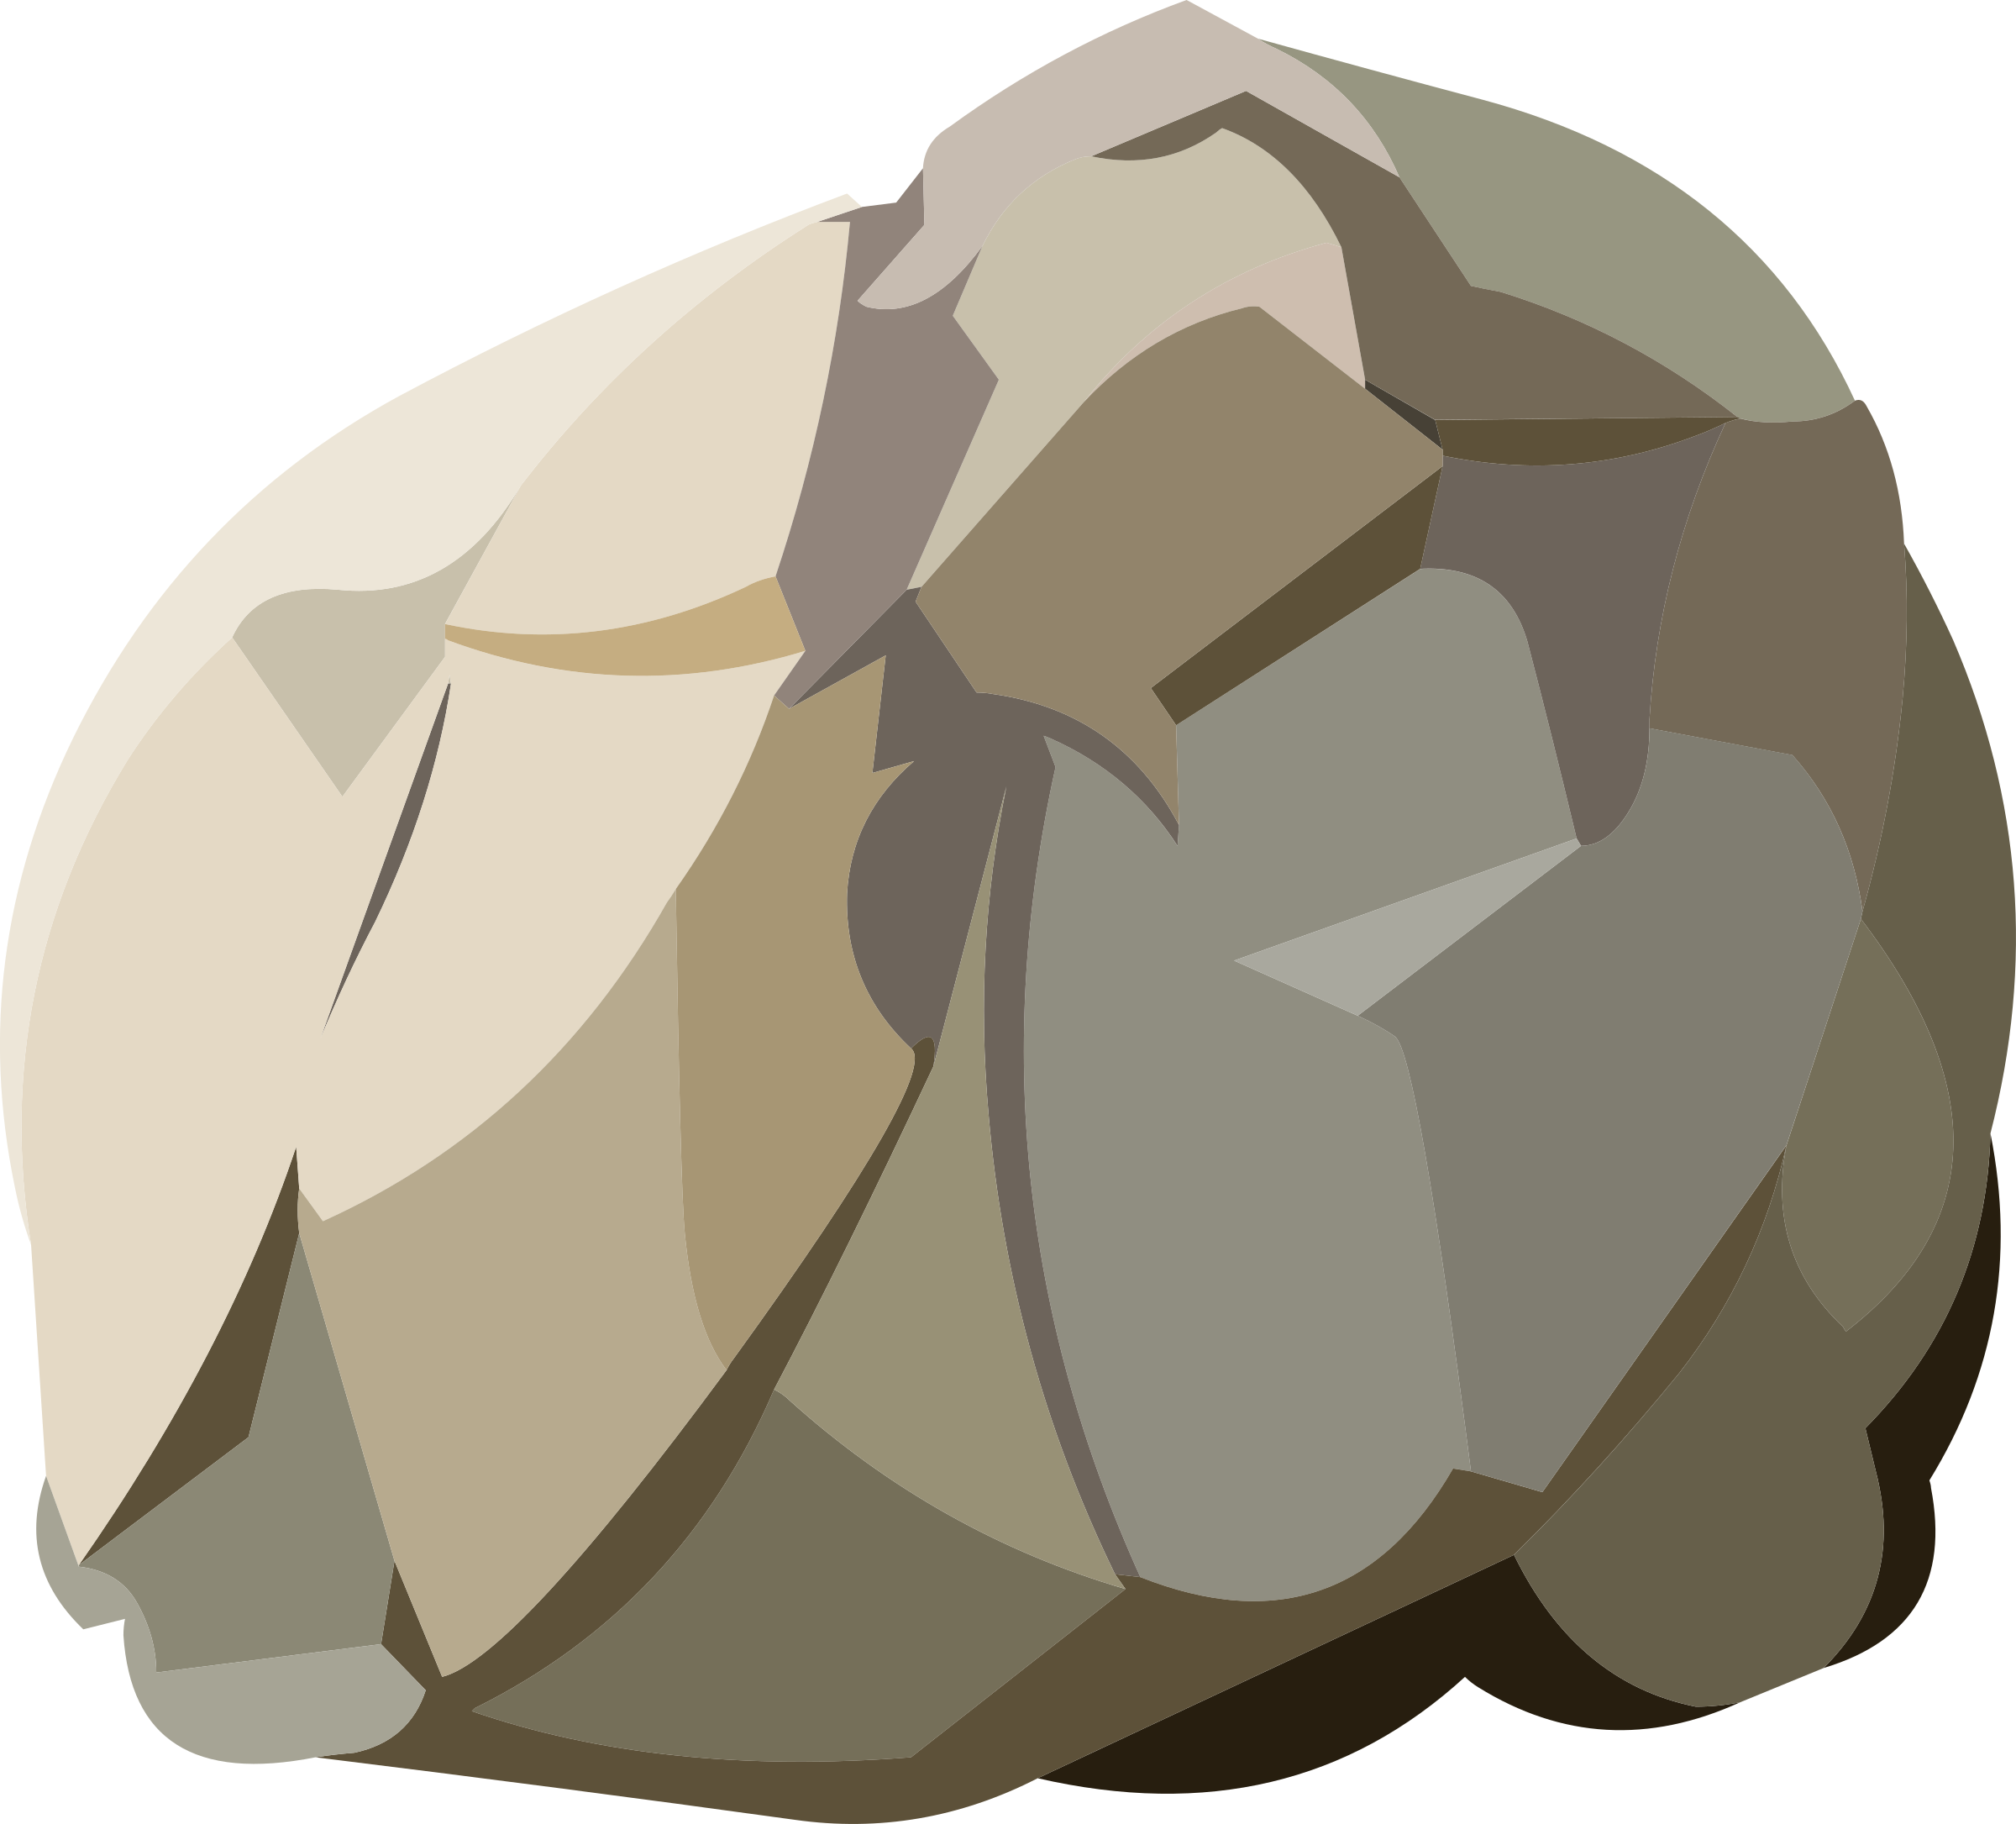 library Rock Clip Art Free